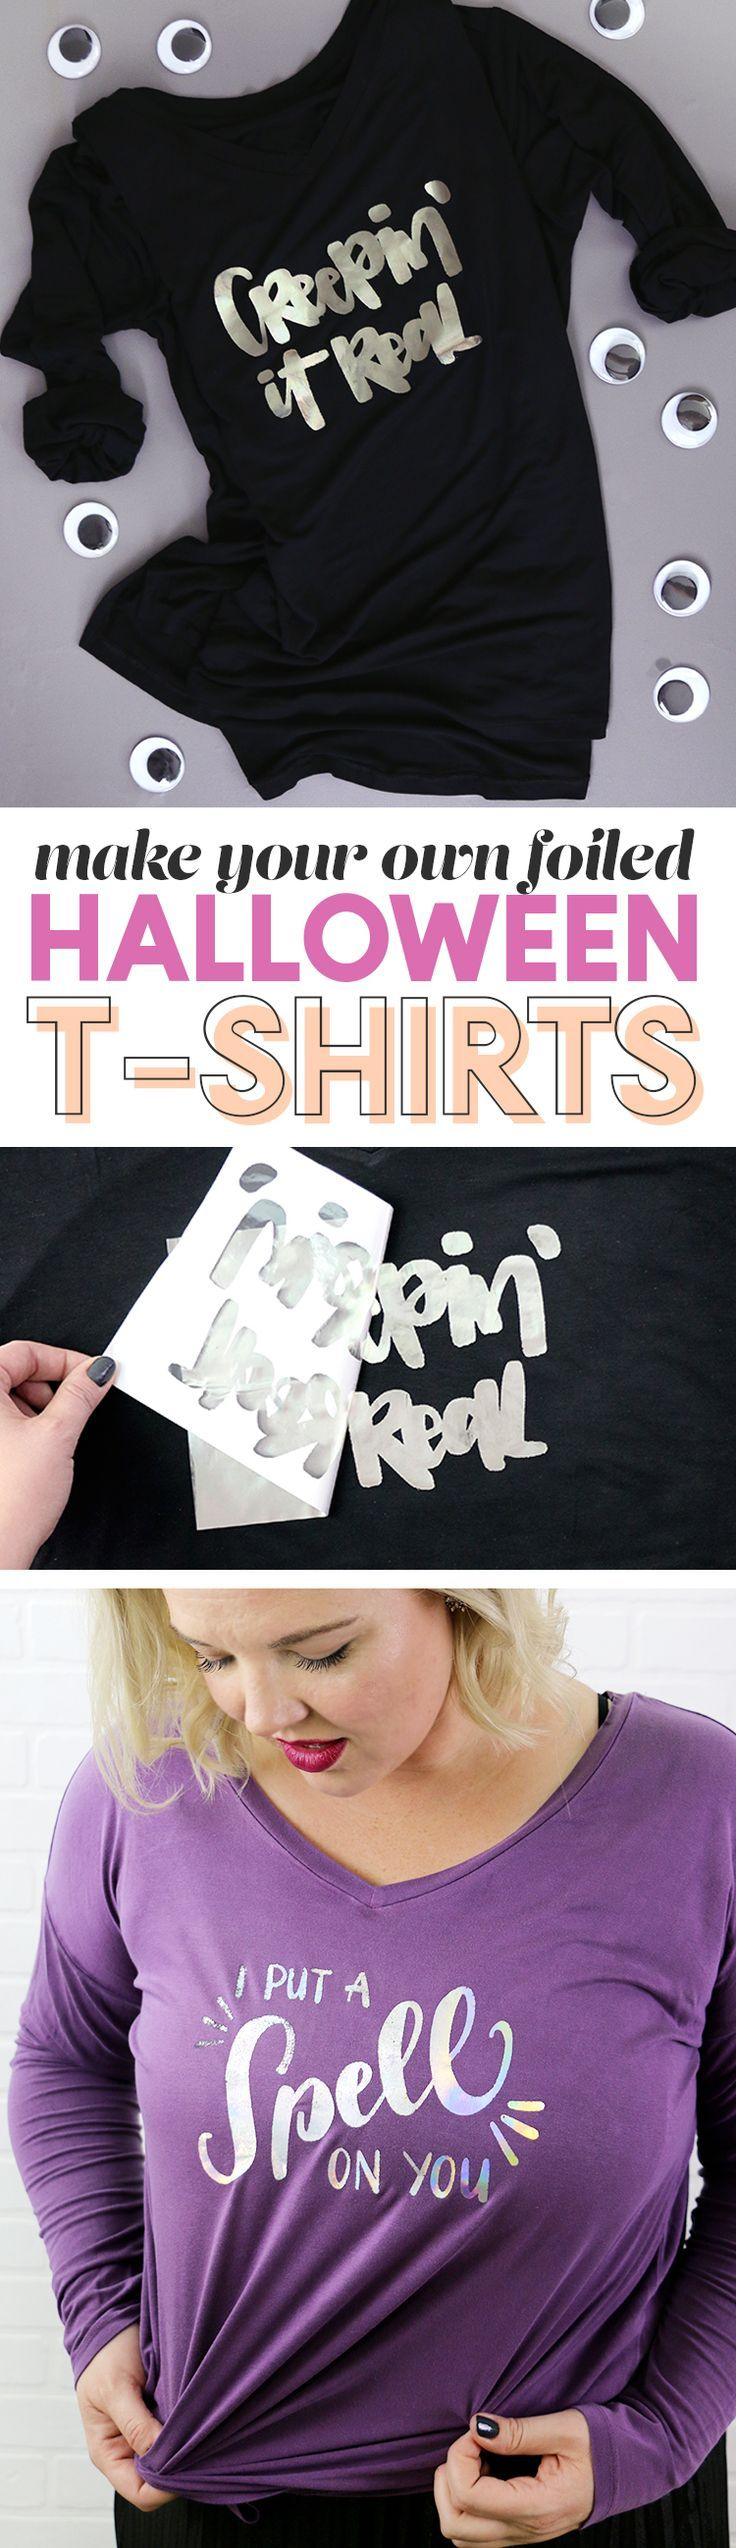 diy foil shirts for Halloween - make your own DIY shiny foil shirt for Halloween this year - free svg cut files